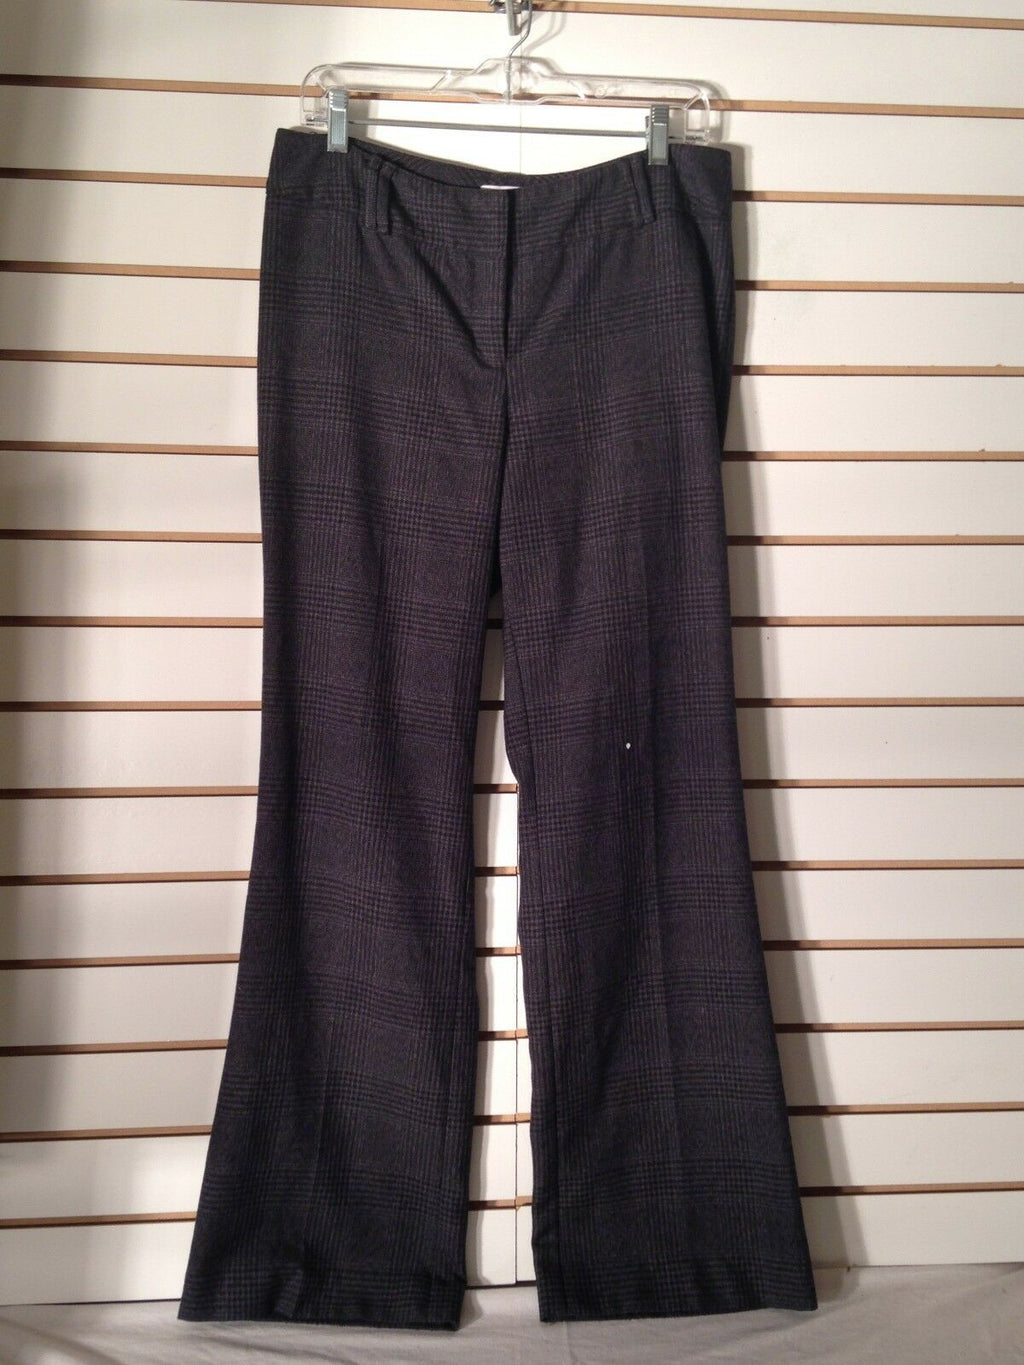 Women's Charcoal Gray Plaid Pants by New York & Company (01942)